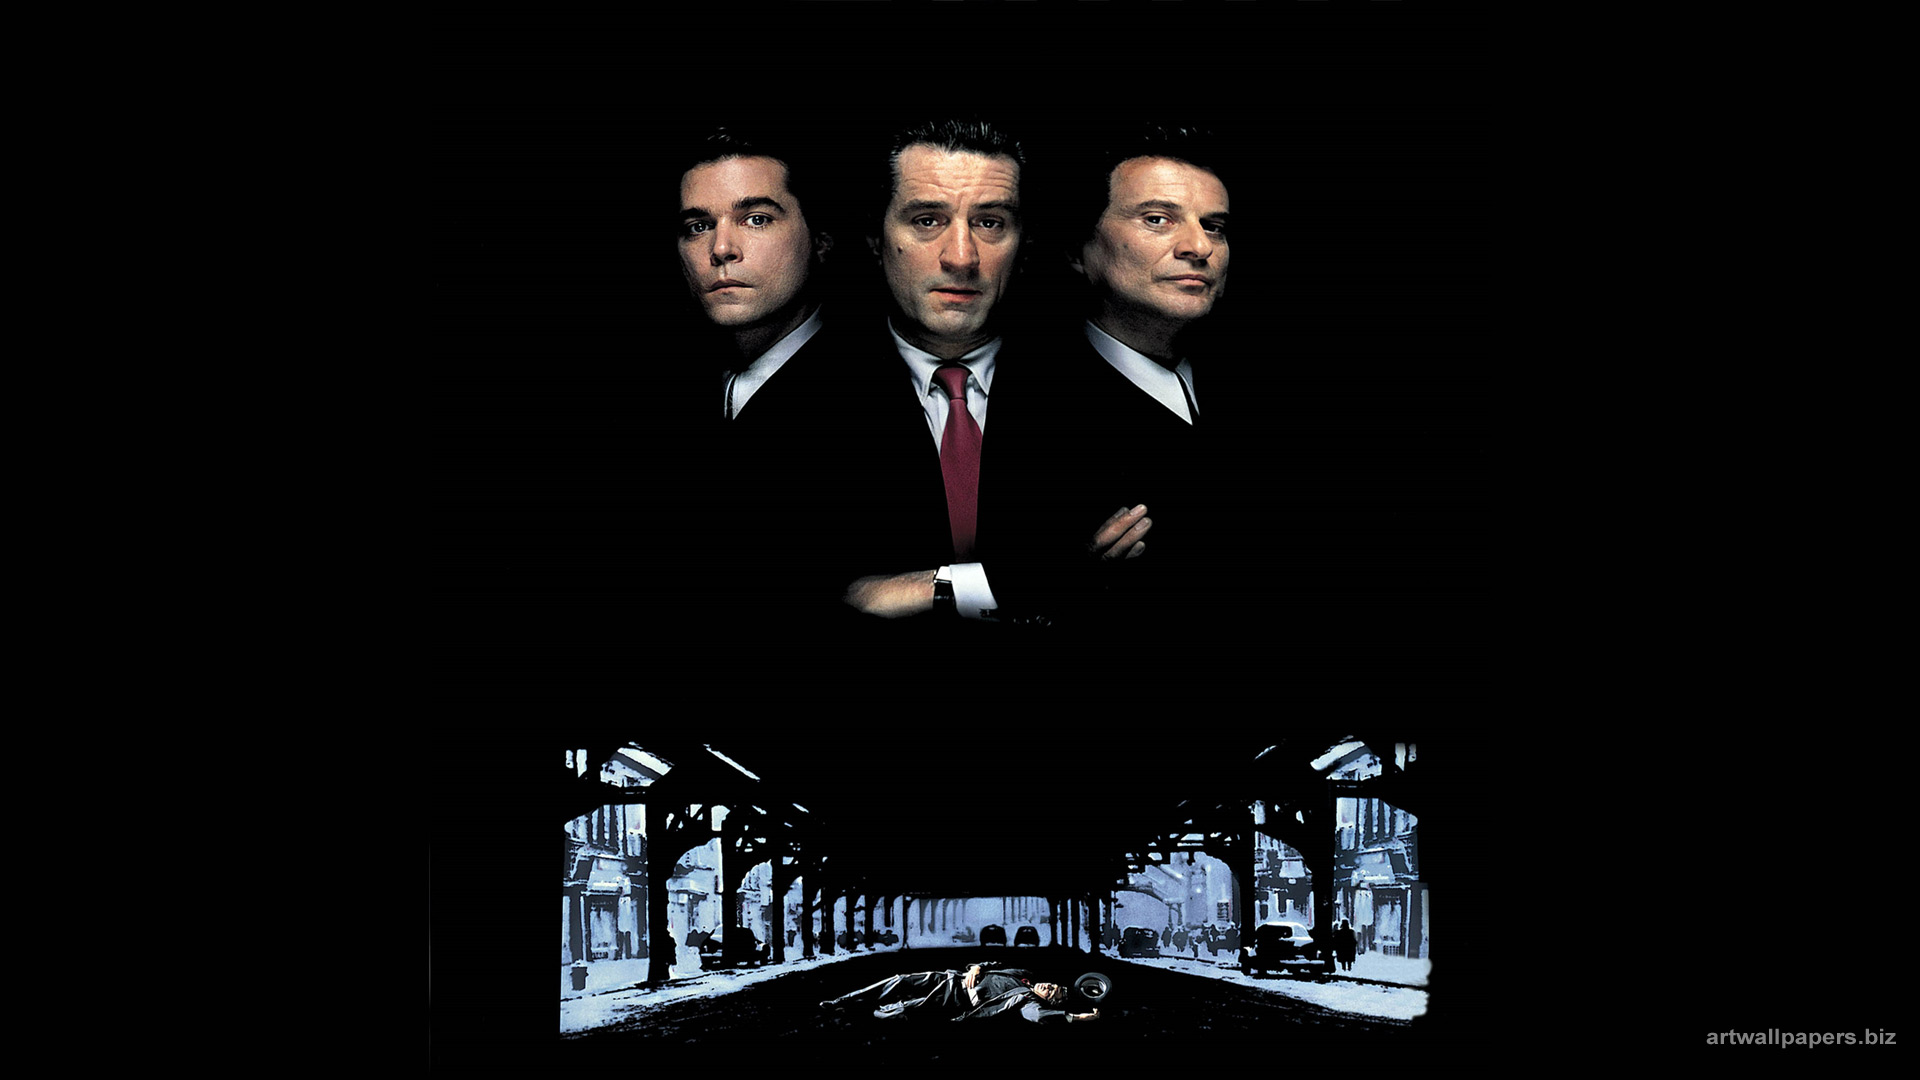 1920x1080 - Goodfellas Wallpapers 19